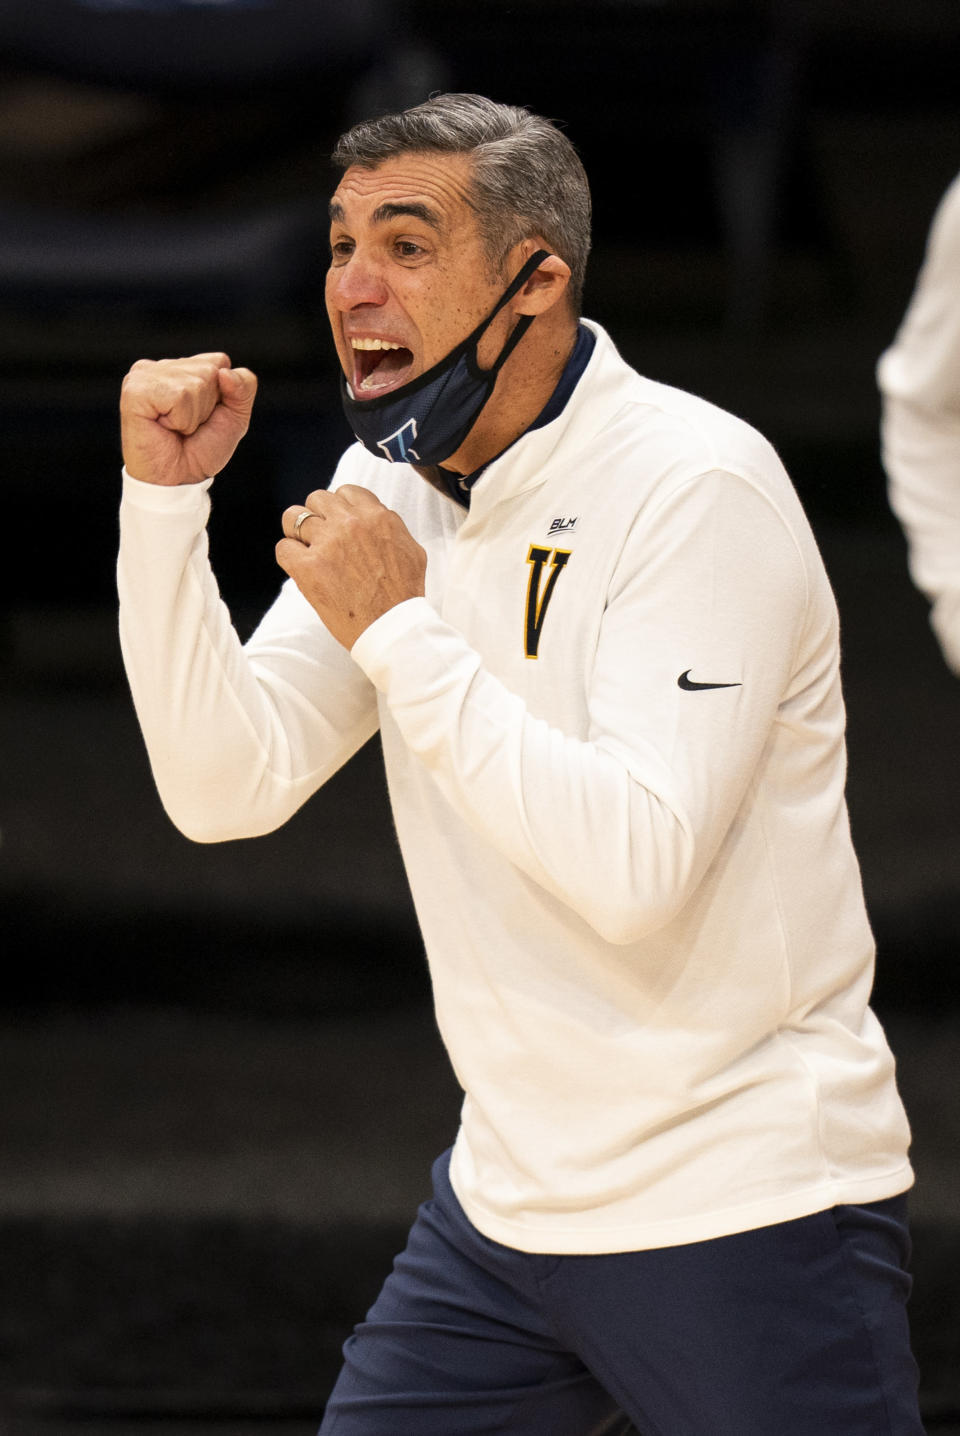 Villanova's head coach Jay Wright reacts on the sidelines during the first half of an NCAA college basketball game against Providence, Saturday, Jan. 23, 2021, in Villanova, Pa. (AP Photo/Chris Szagola)